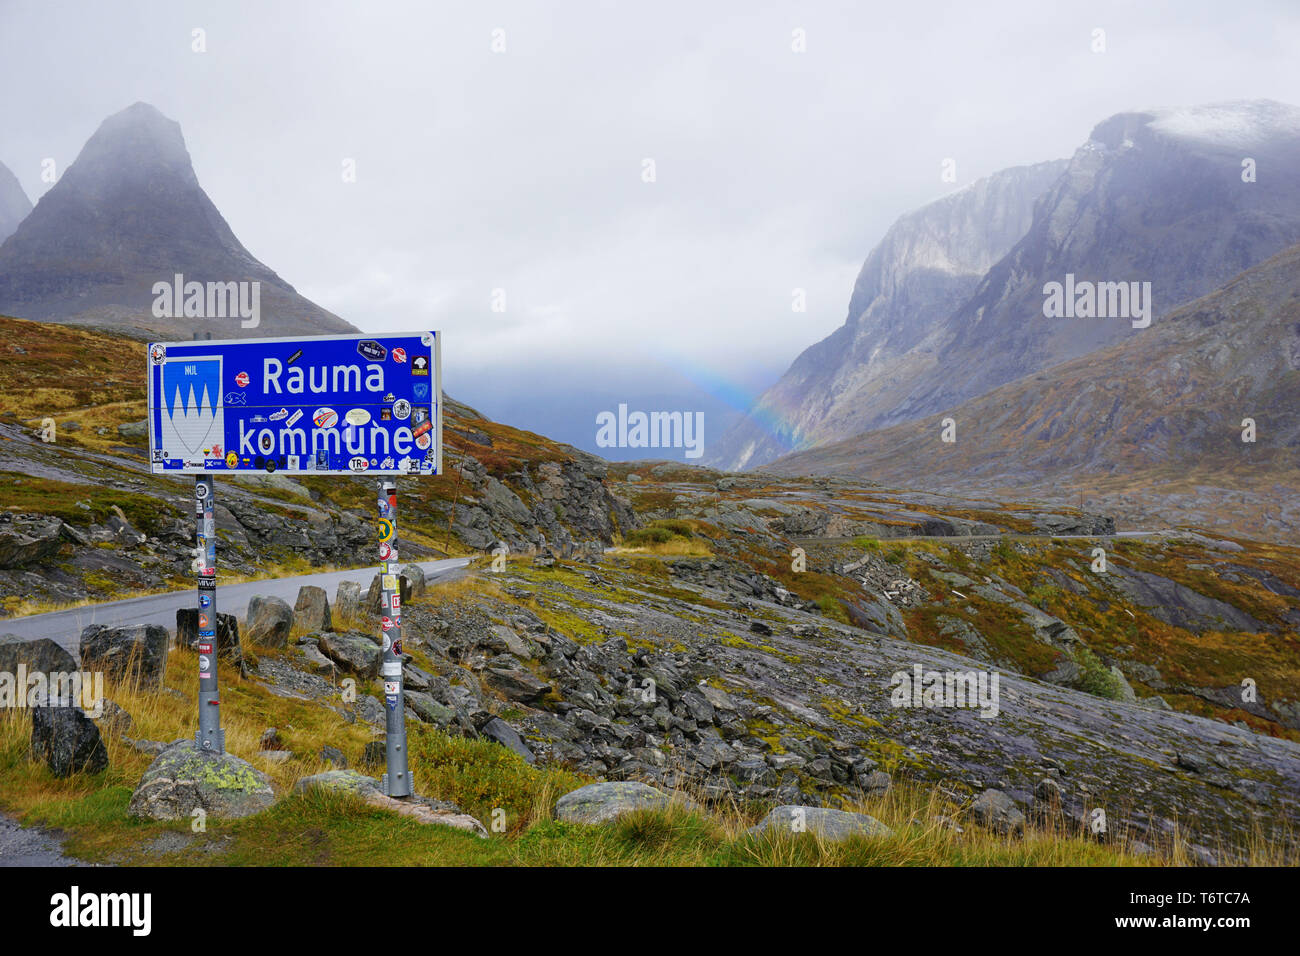 Rauma location sign - serpentine mountain road in norway - Stock Image